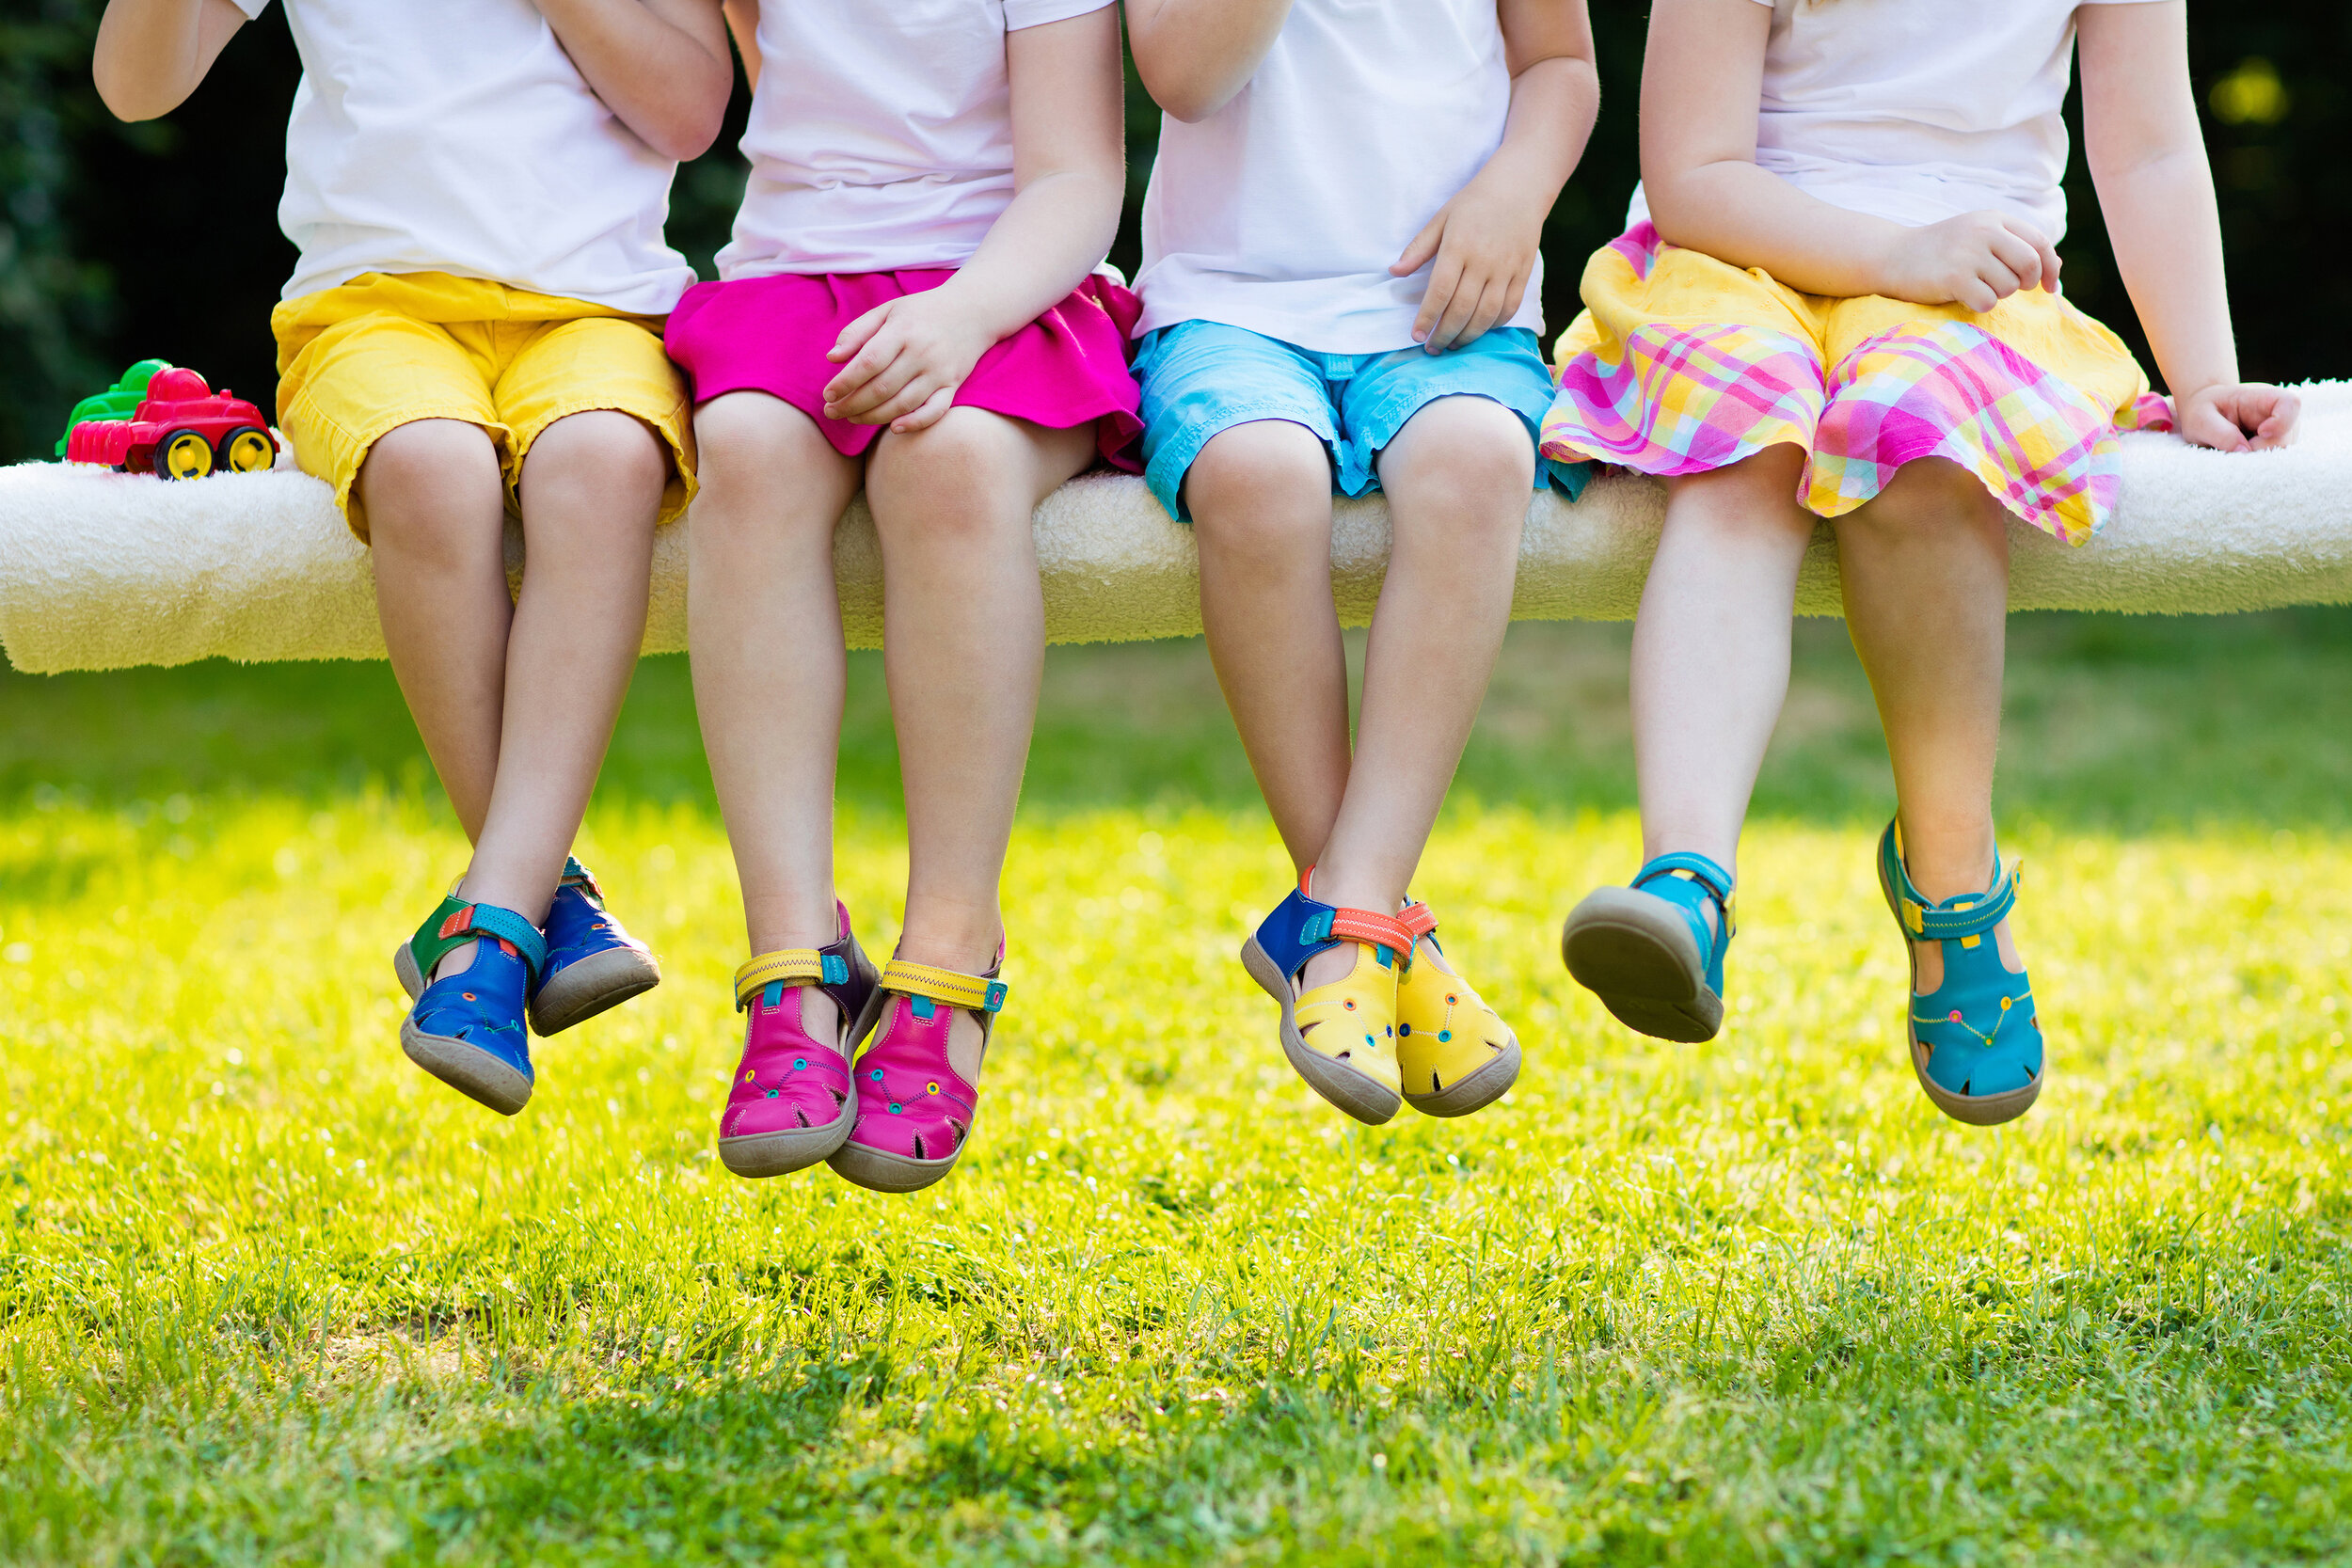 bigstock-Kids-With-Colorful-Shoes-Chil-195395281.jpg